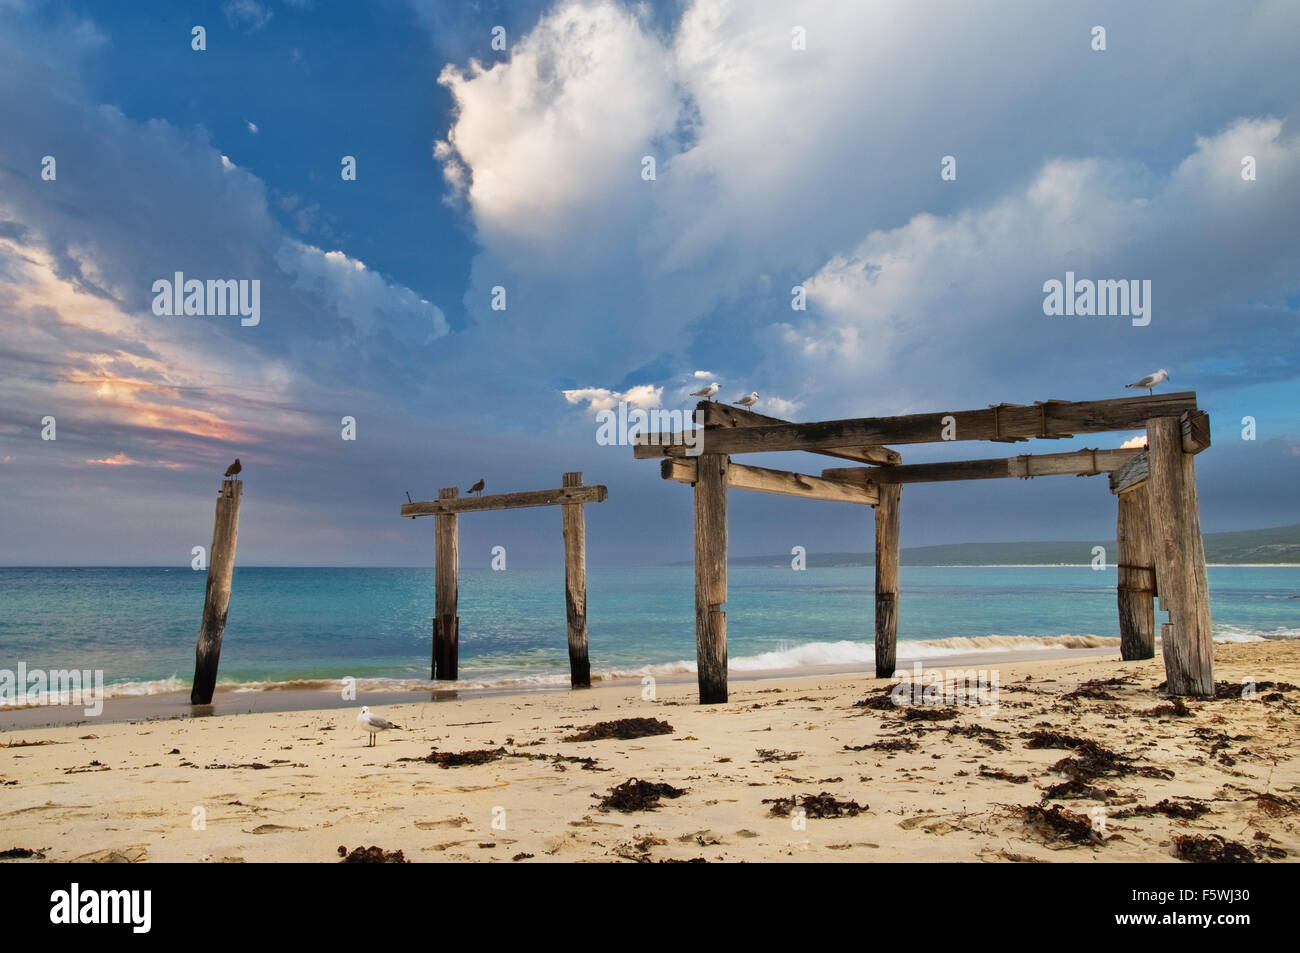 Remains of a historic jetty at Hamelin Bay. - Stock Image